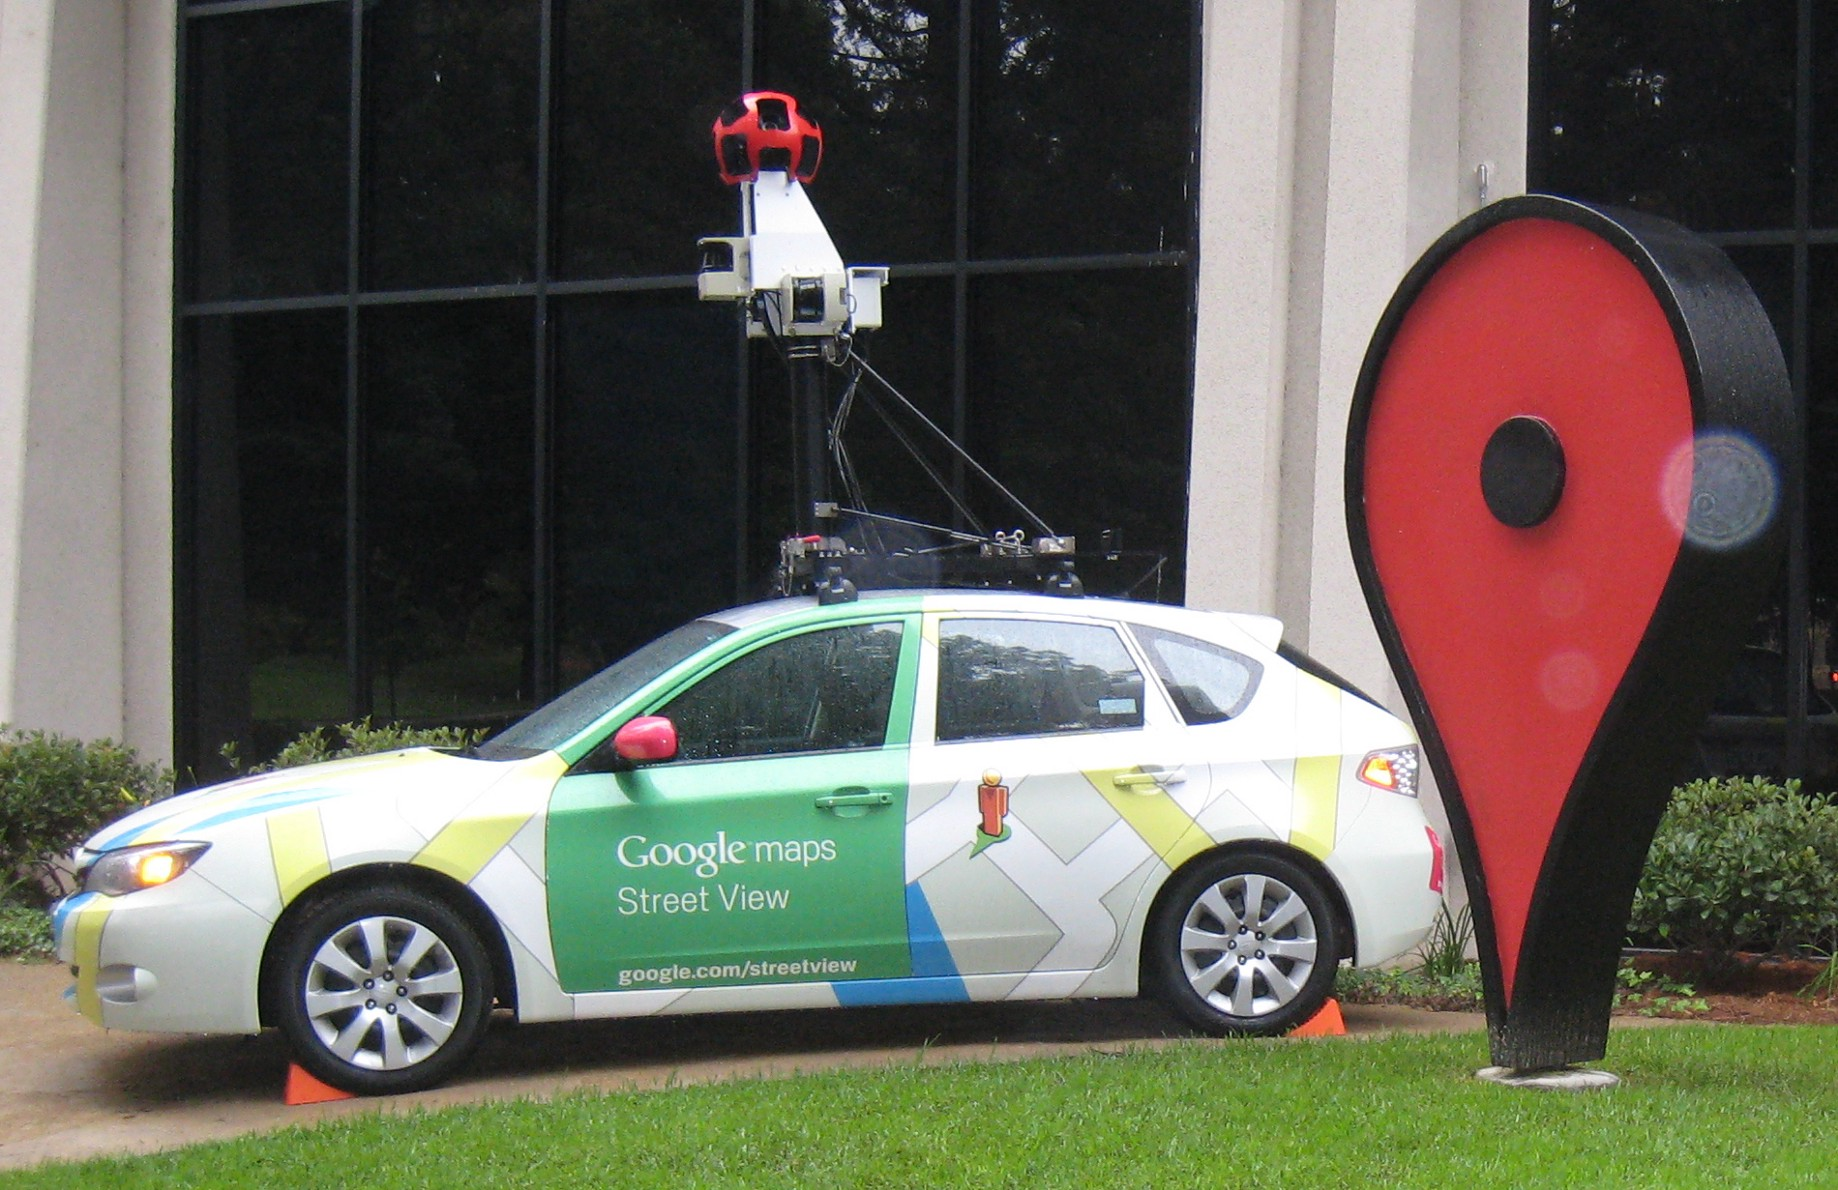 Does Google Maps Have Street View on